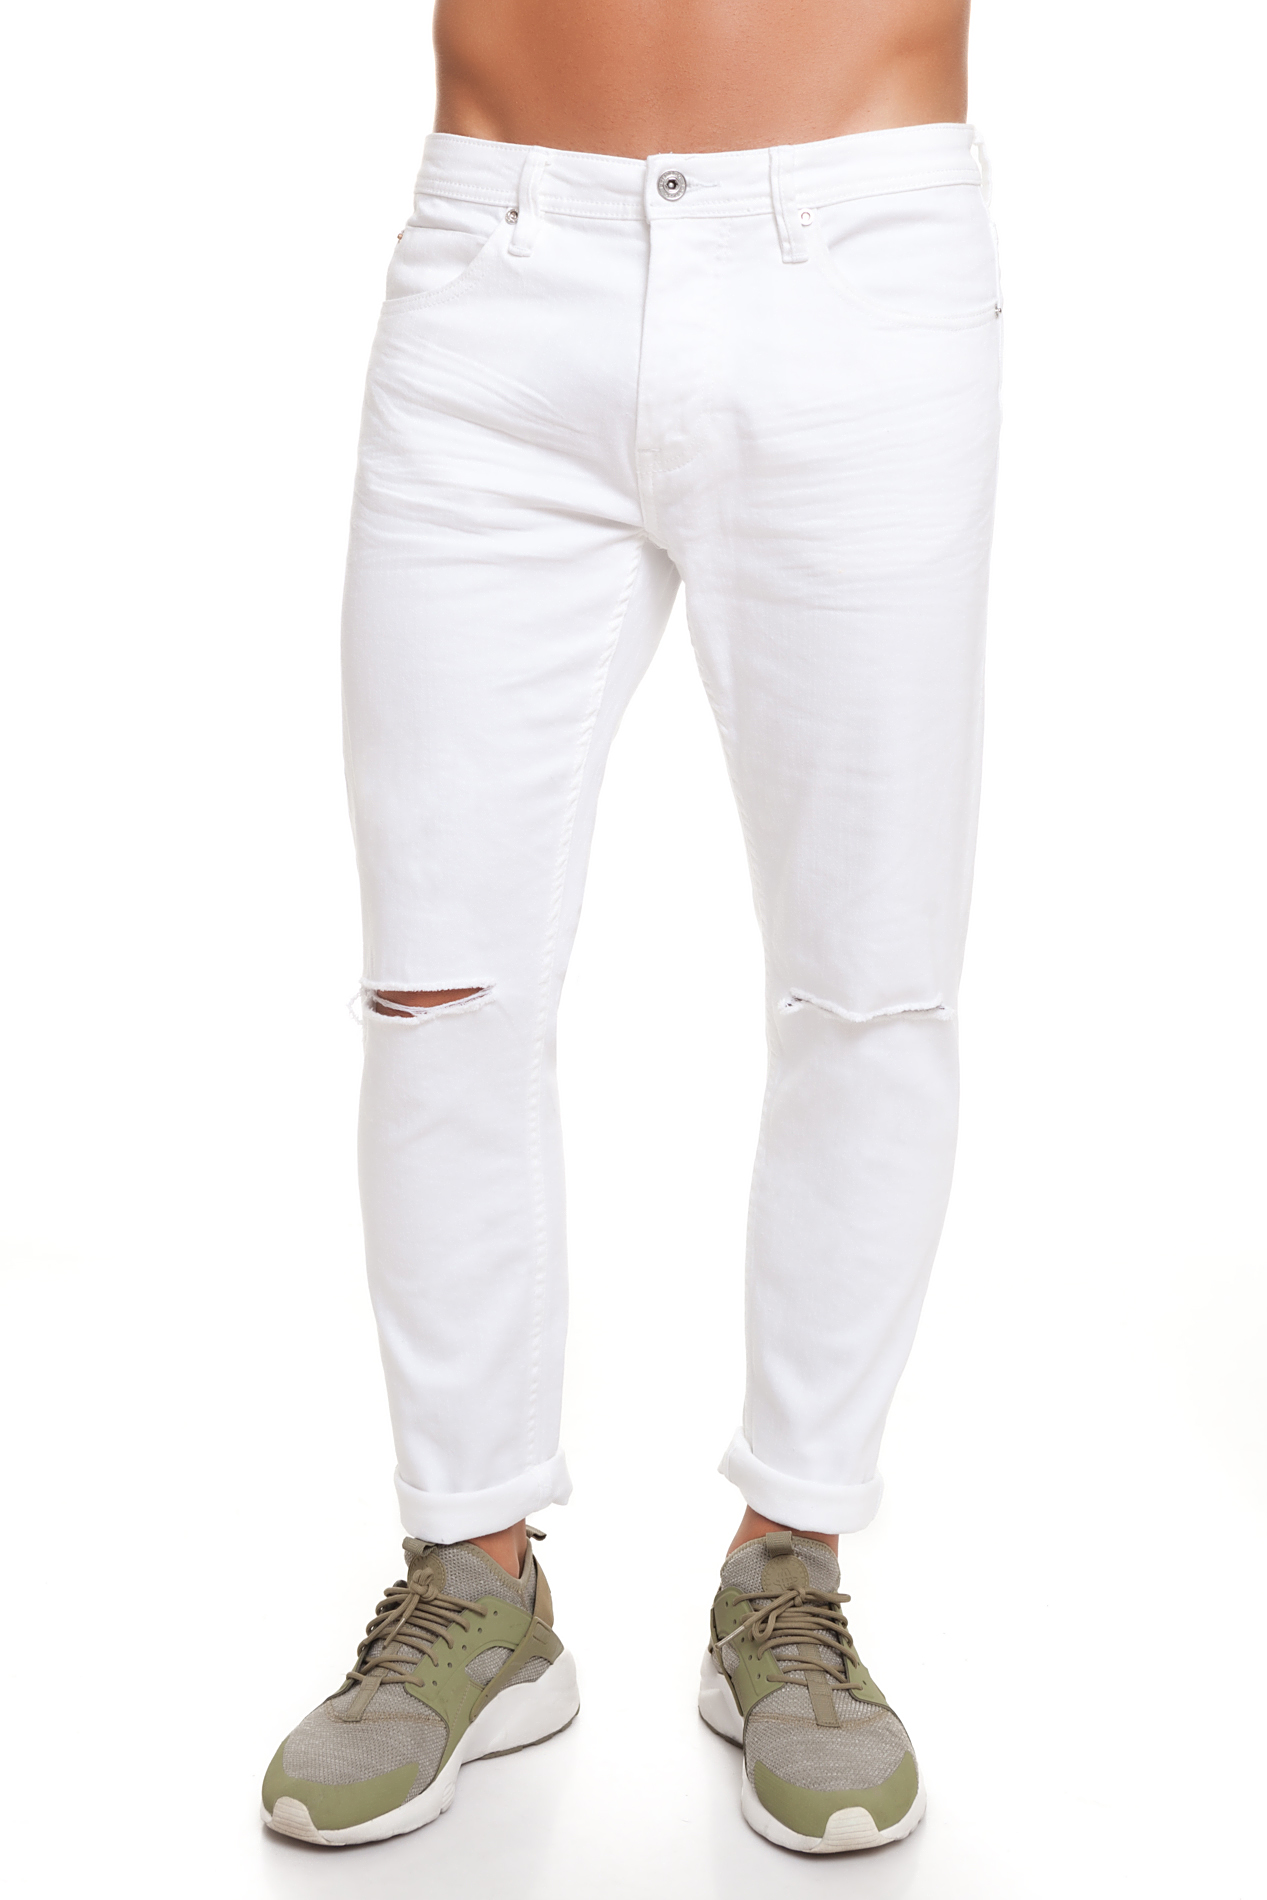 CR7 Jeans For Men Color White Jeans Casual Casual Super Skinny Slash Pockets CRD036A